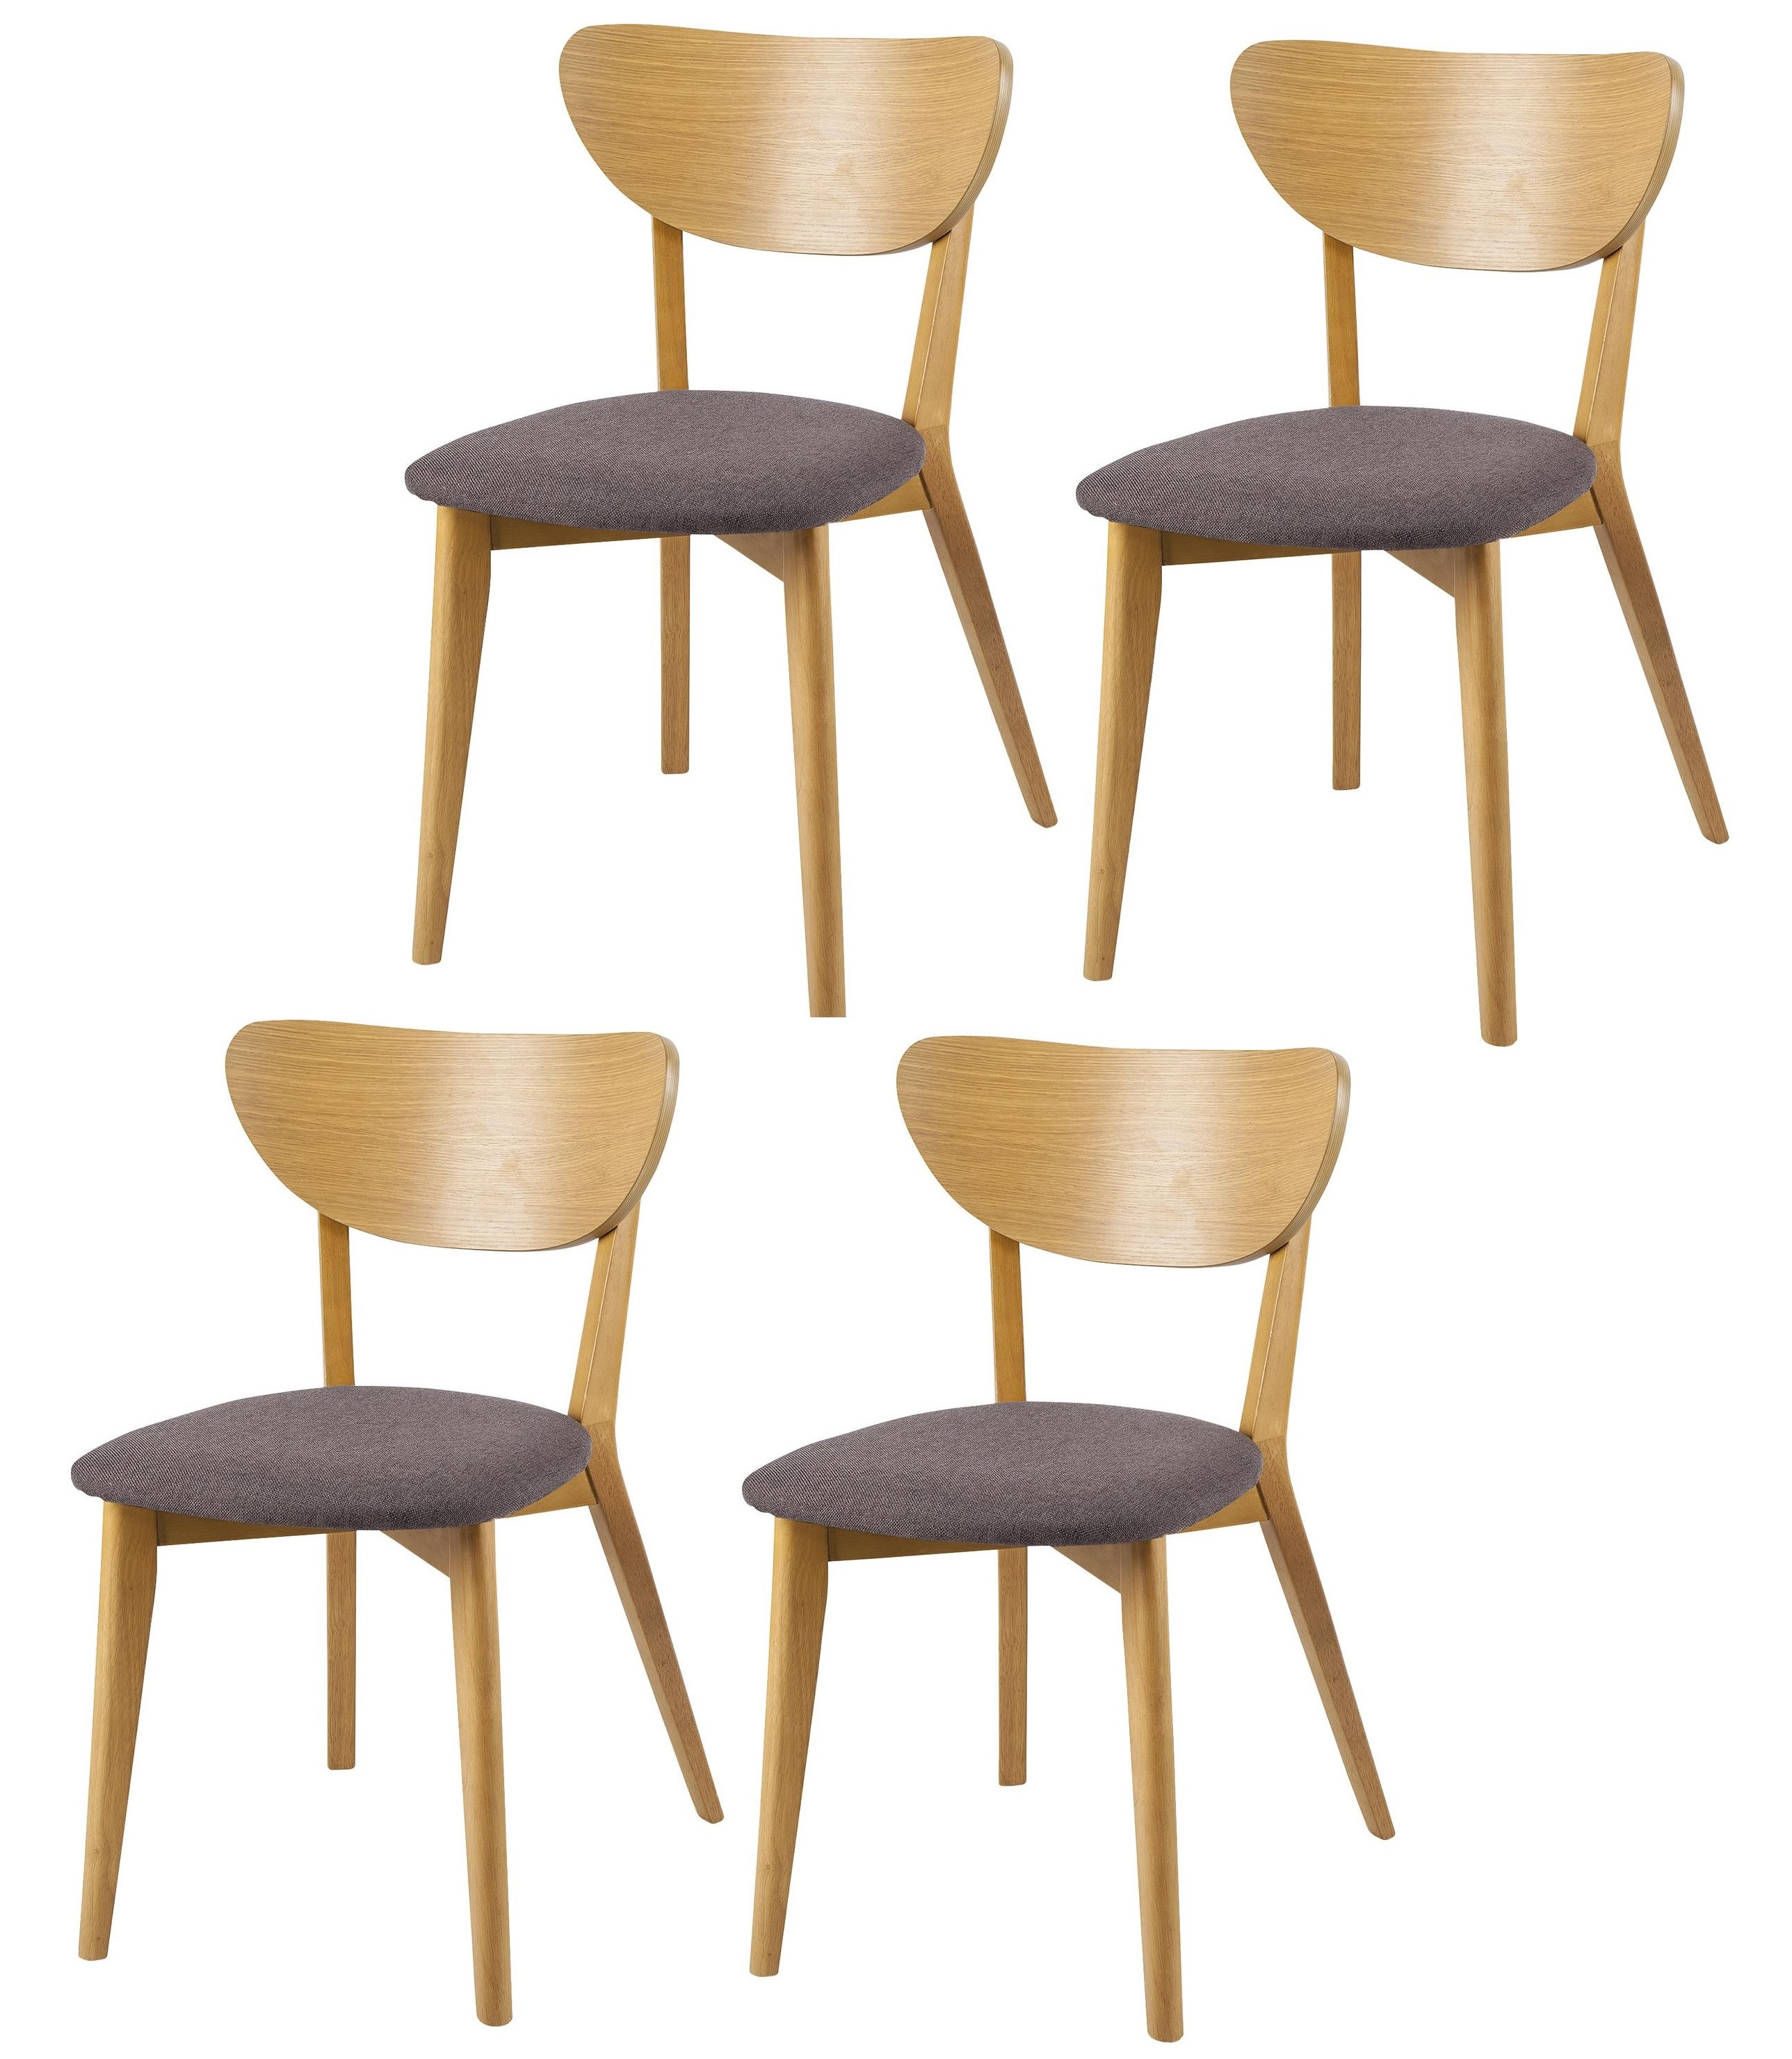 Retro Dining Room Chairs: NEW Stockholm Retro Style Set Of 4 Upholstered Dining